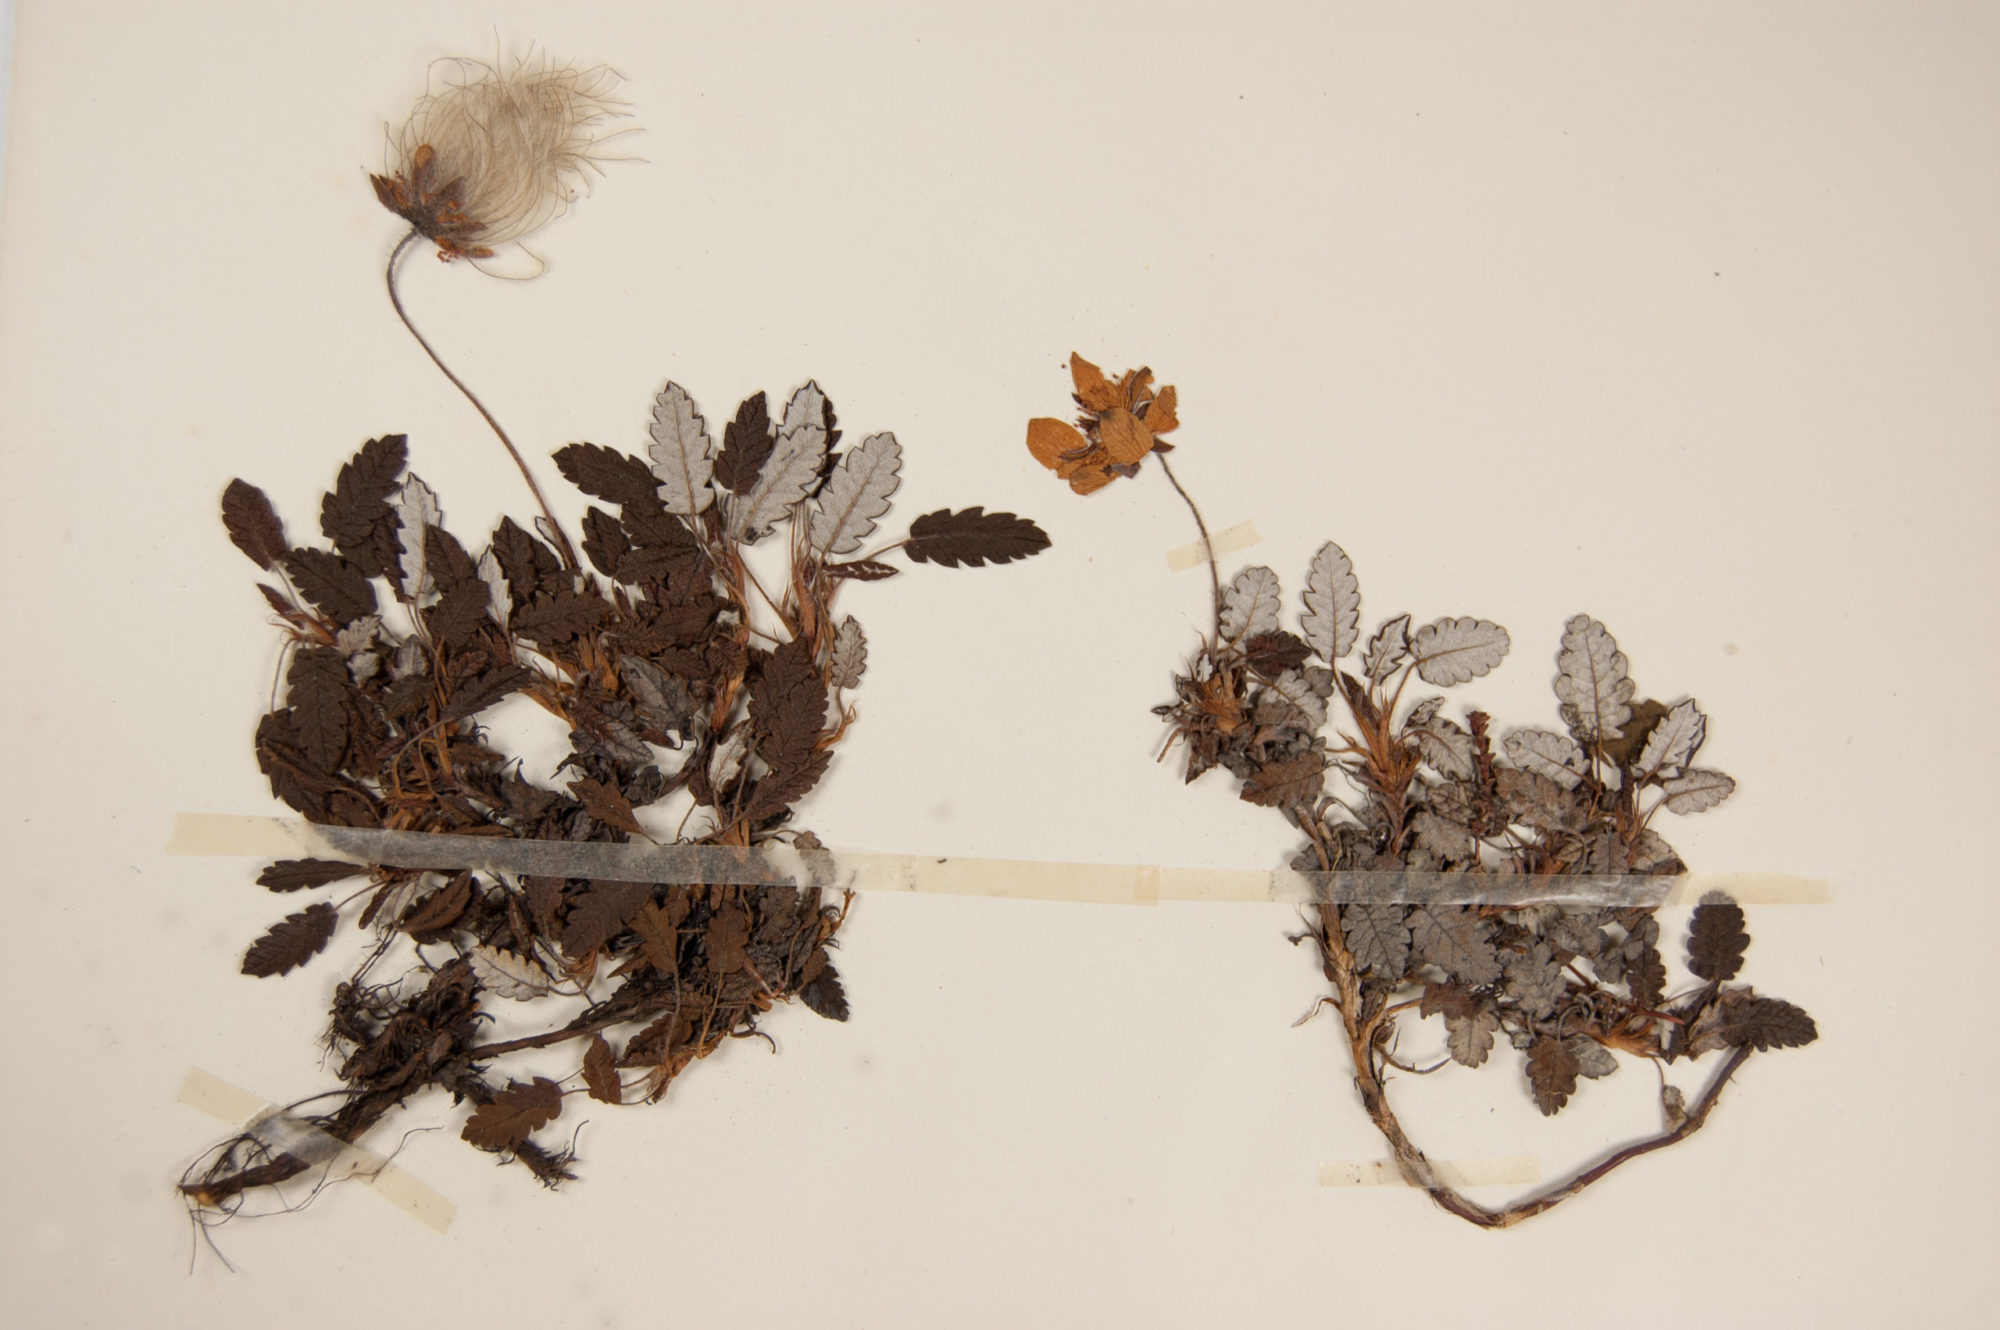 Mountain avens (Dryas octopetala) from Keble Martin's herbarium